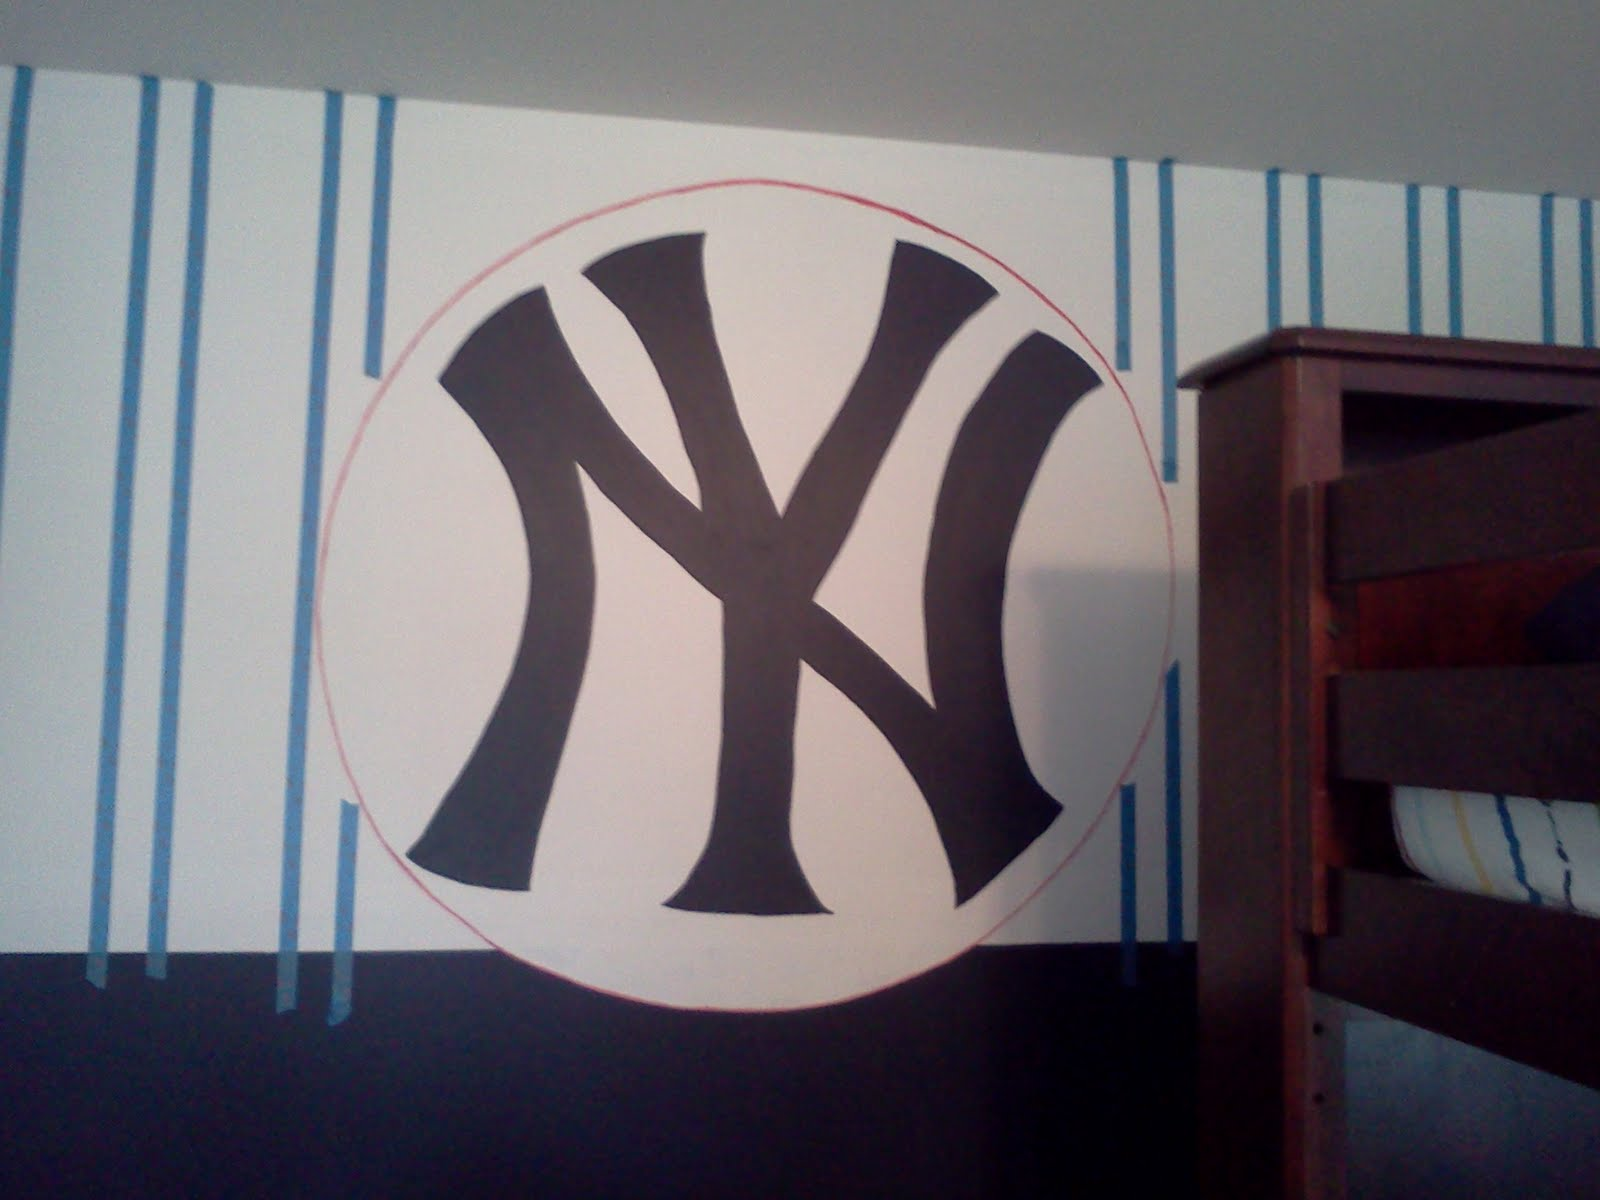 Then it came time to fill in the stripes with the navy blue. We did decide to put a small circle of red around the NY to set it apart from the ...